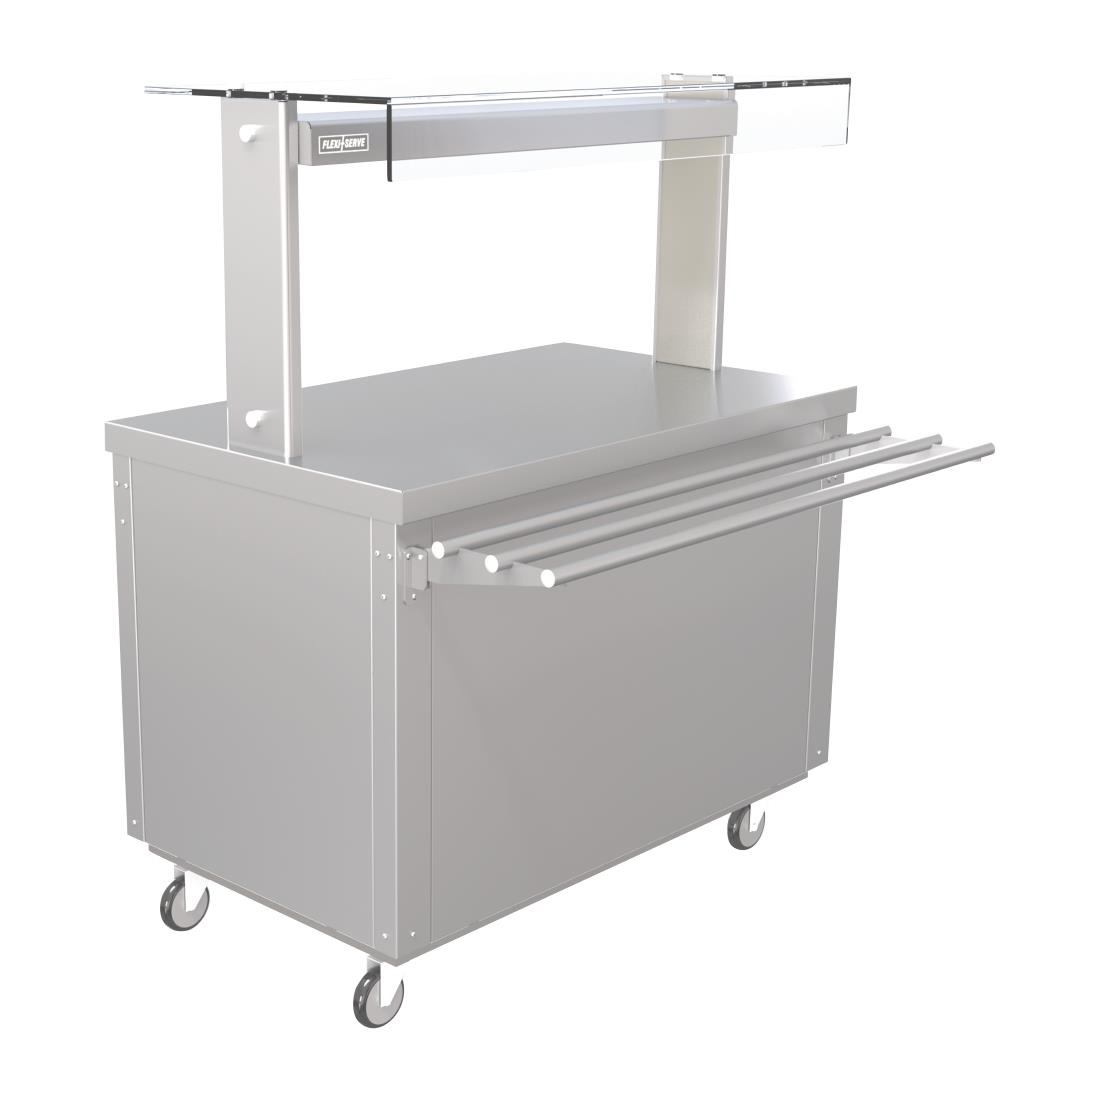 Image of Parry Ambient Buffet Bar with Chilled Cupboard 1160mm FS-A3PACK